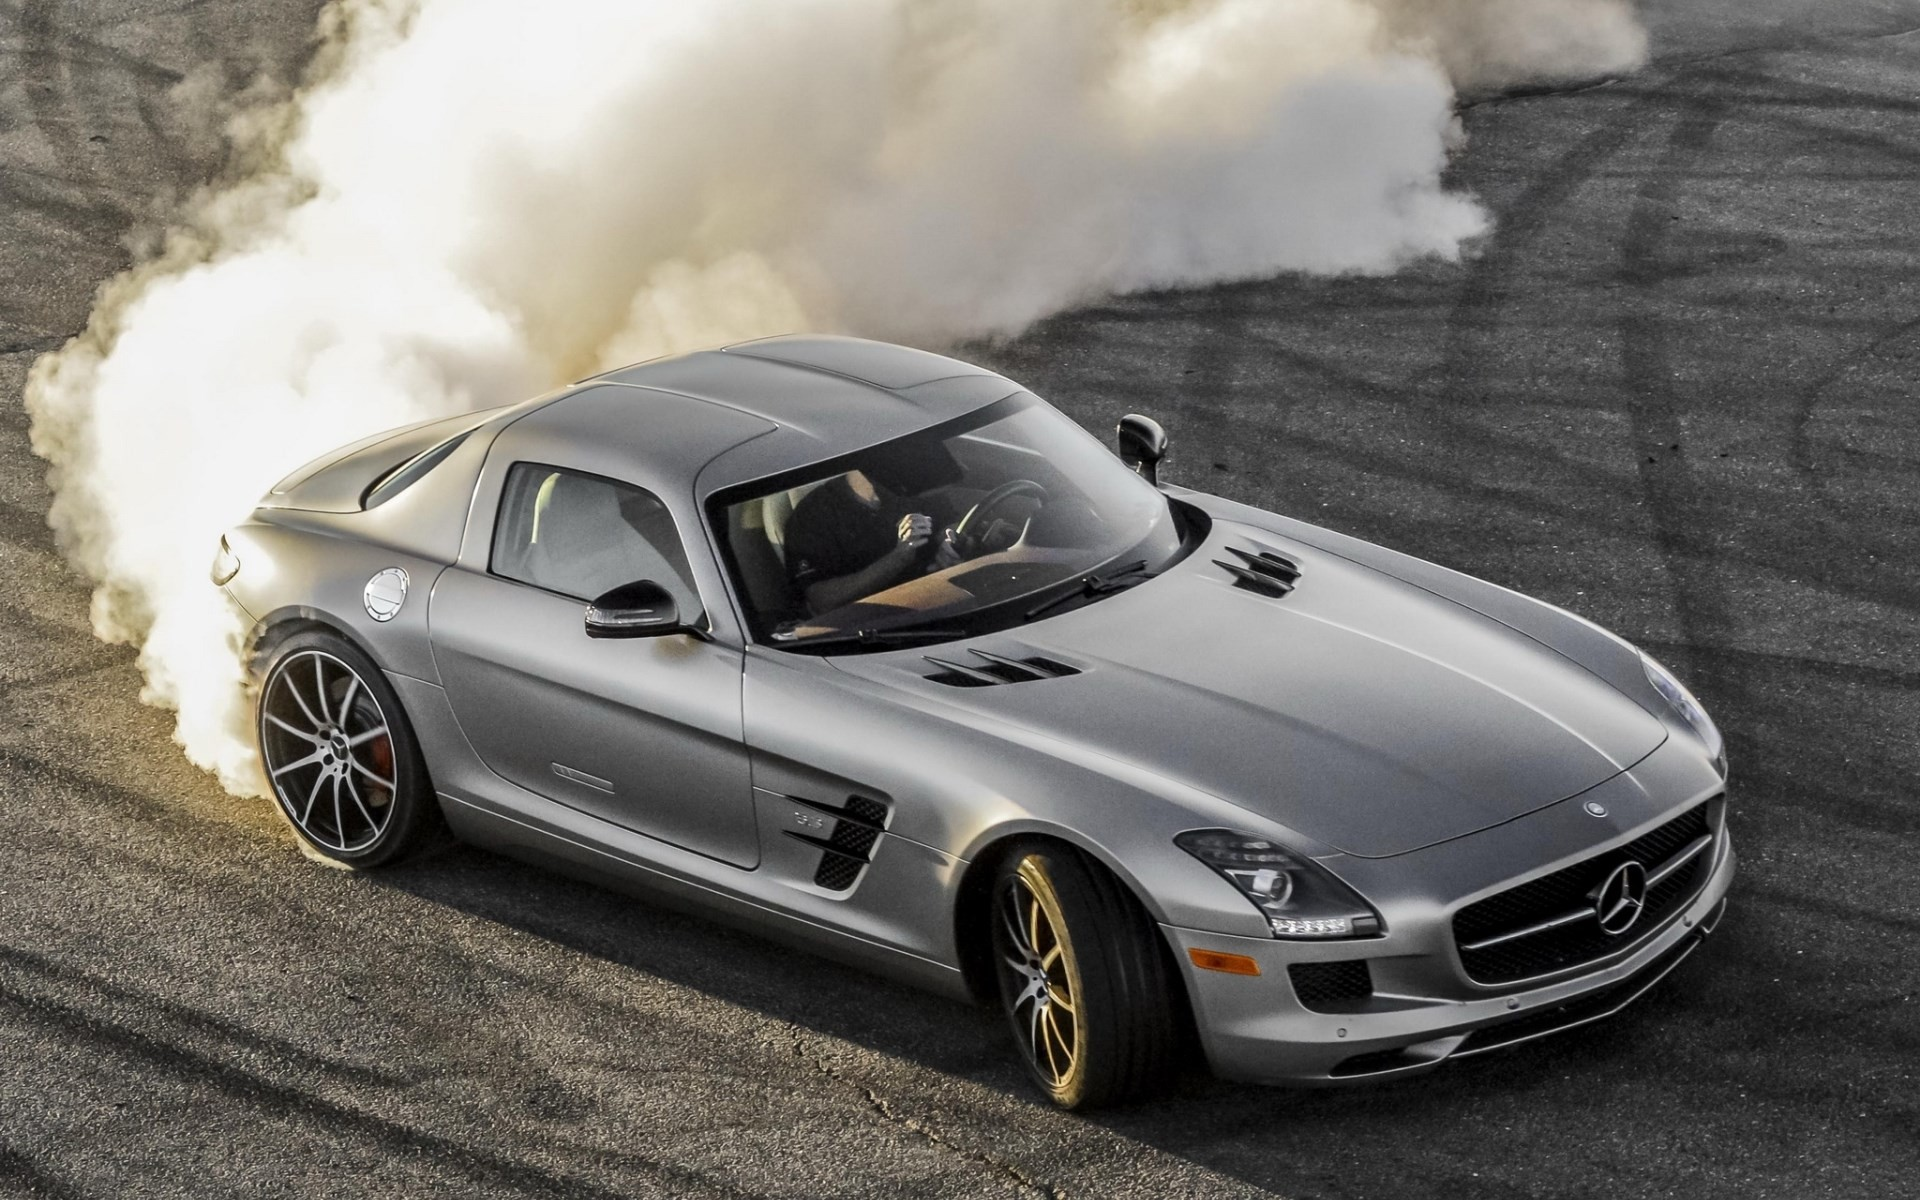 1920x1200 wallpaper images mercedes benz sls - mercedes benz sls category